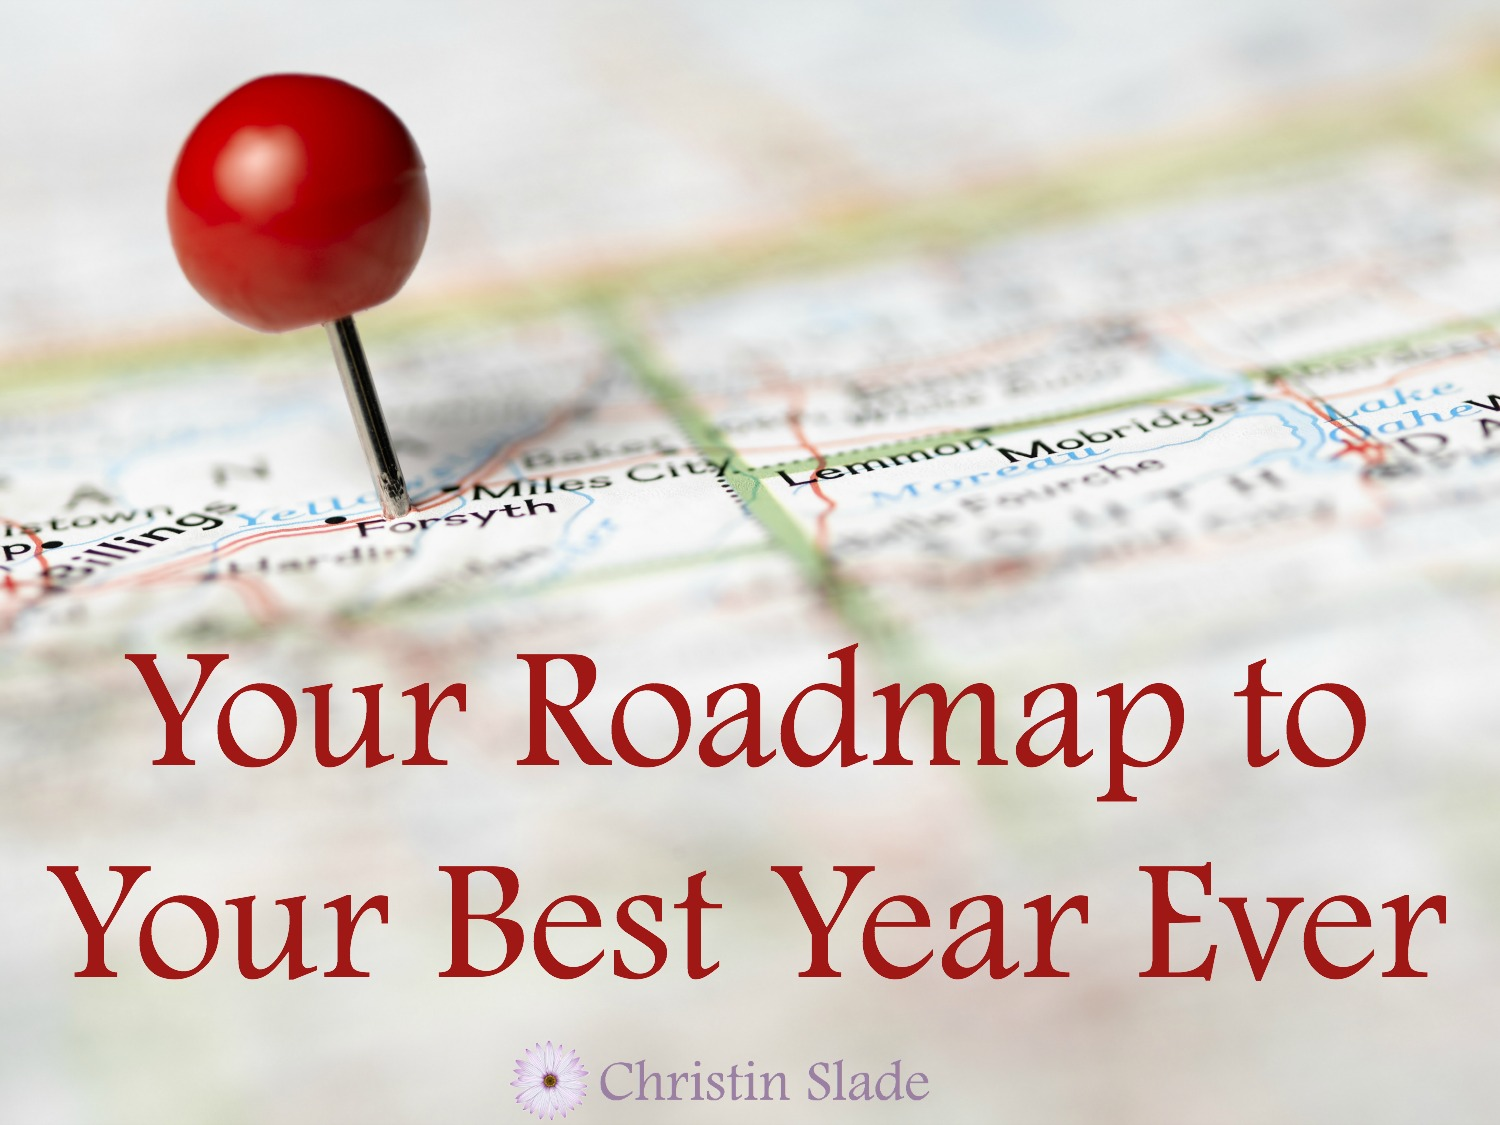 Roadmap to Your Best Year Ever